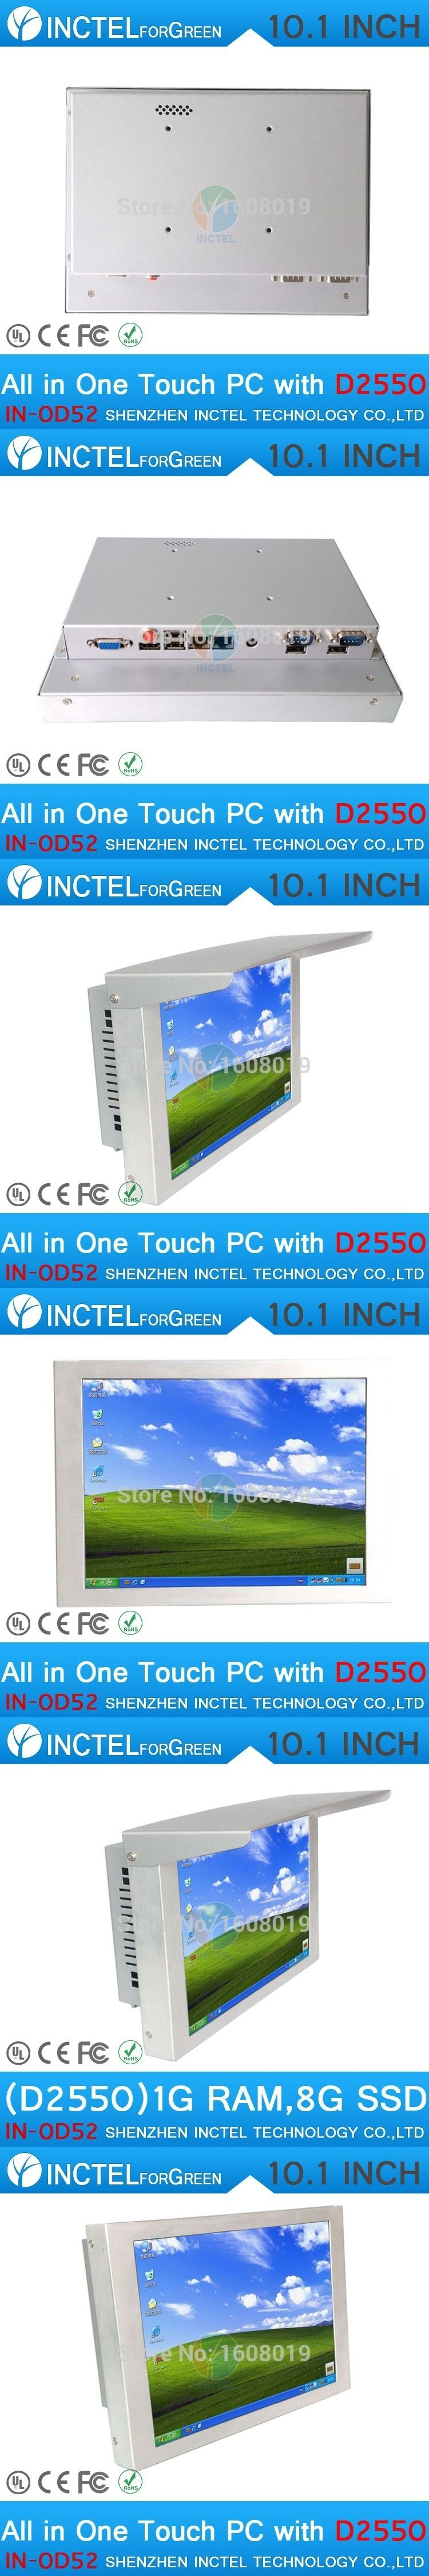 Industrial touchscreen all in one pc with 10\